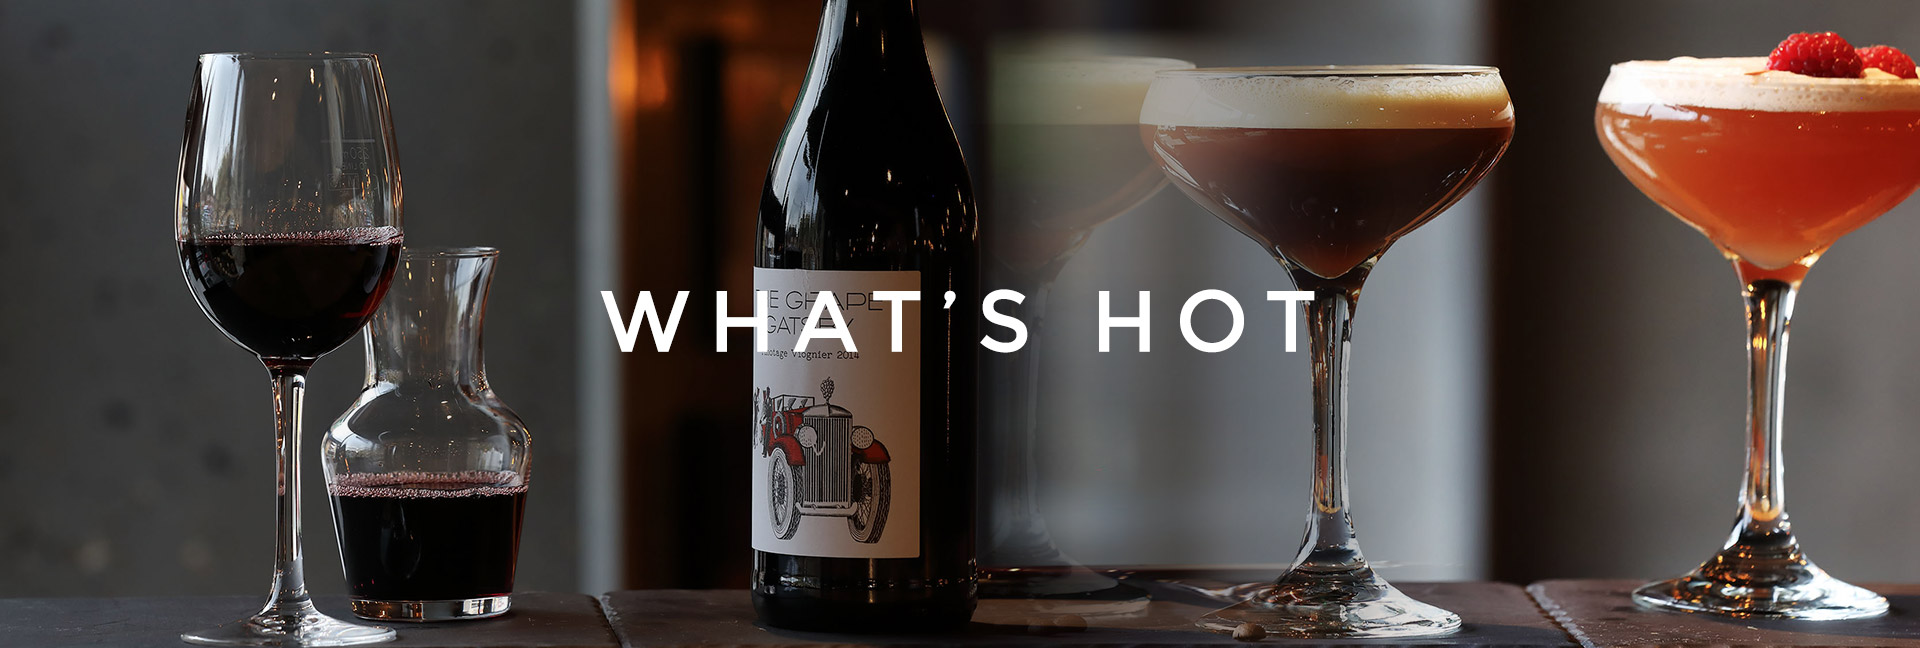 What's Hot at All Bar One York